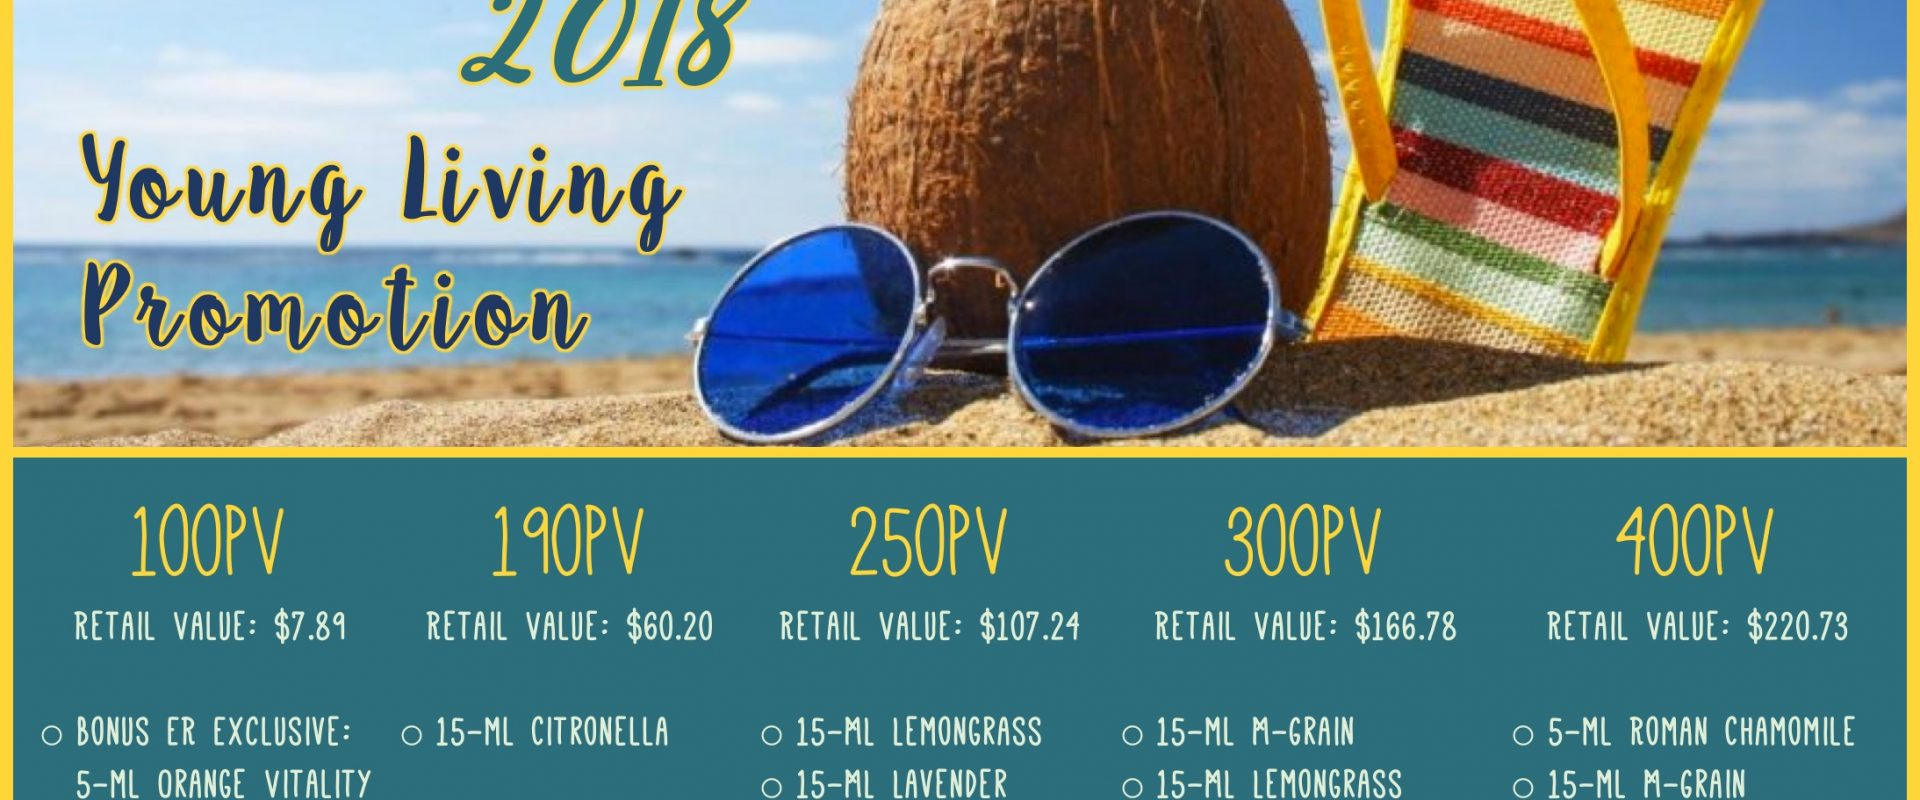 June Promos Will Get You Fired Up for Summer!